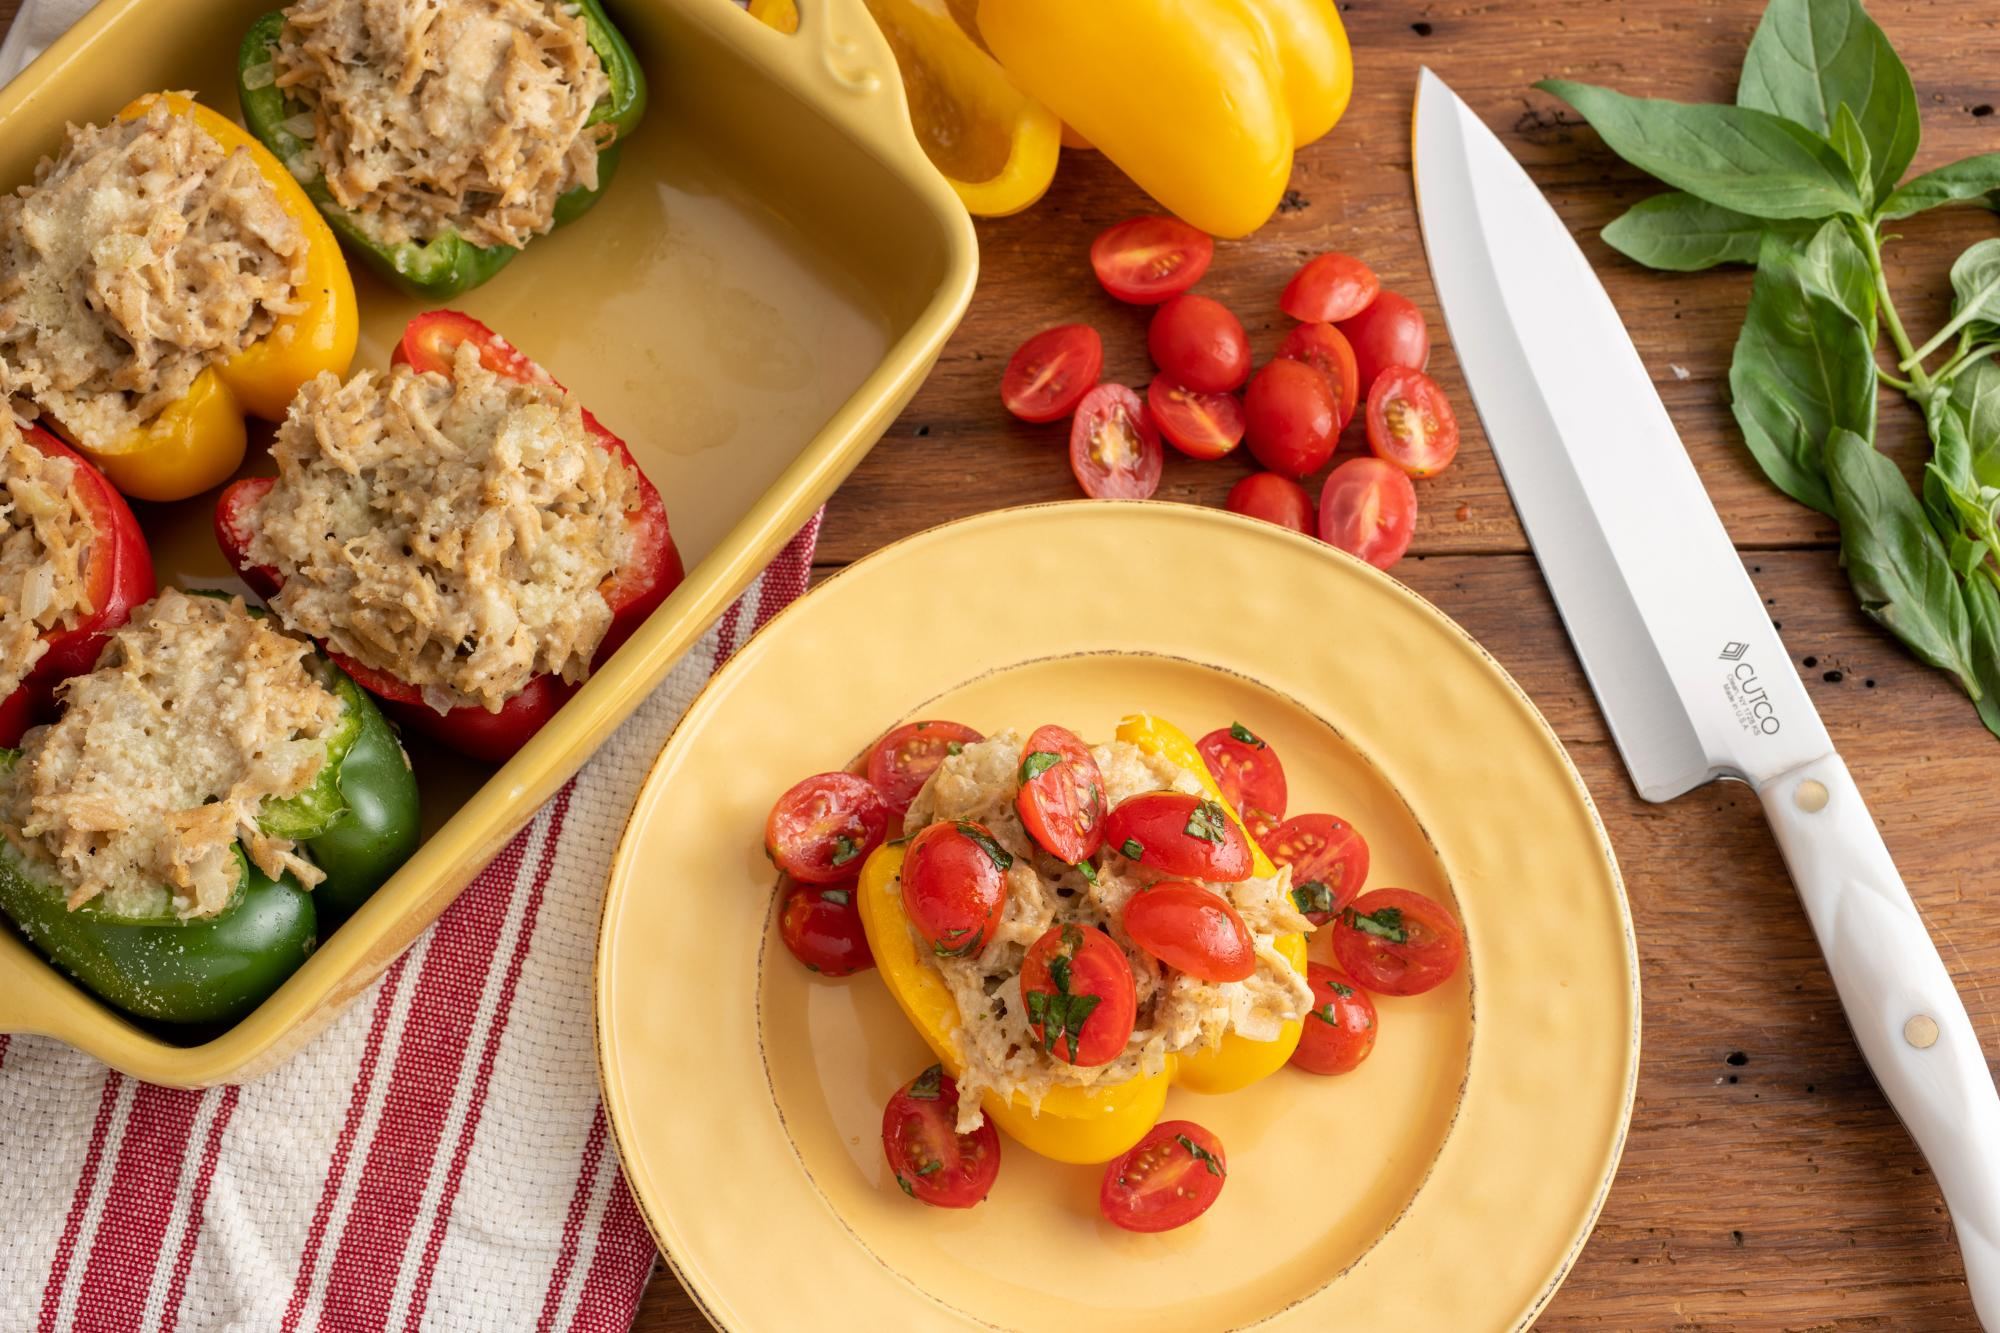 Stuffed Peppers with Rotisserie Chicken and Orzo